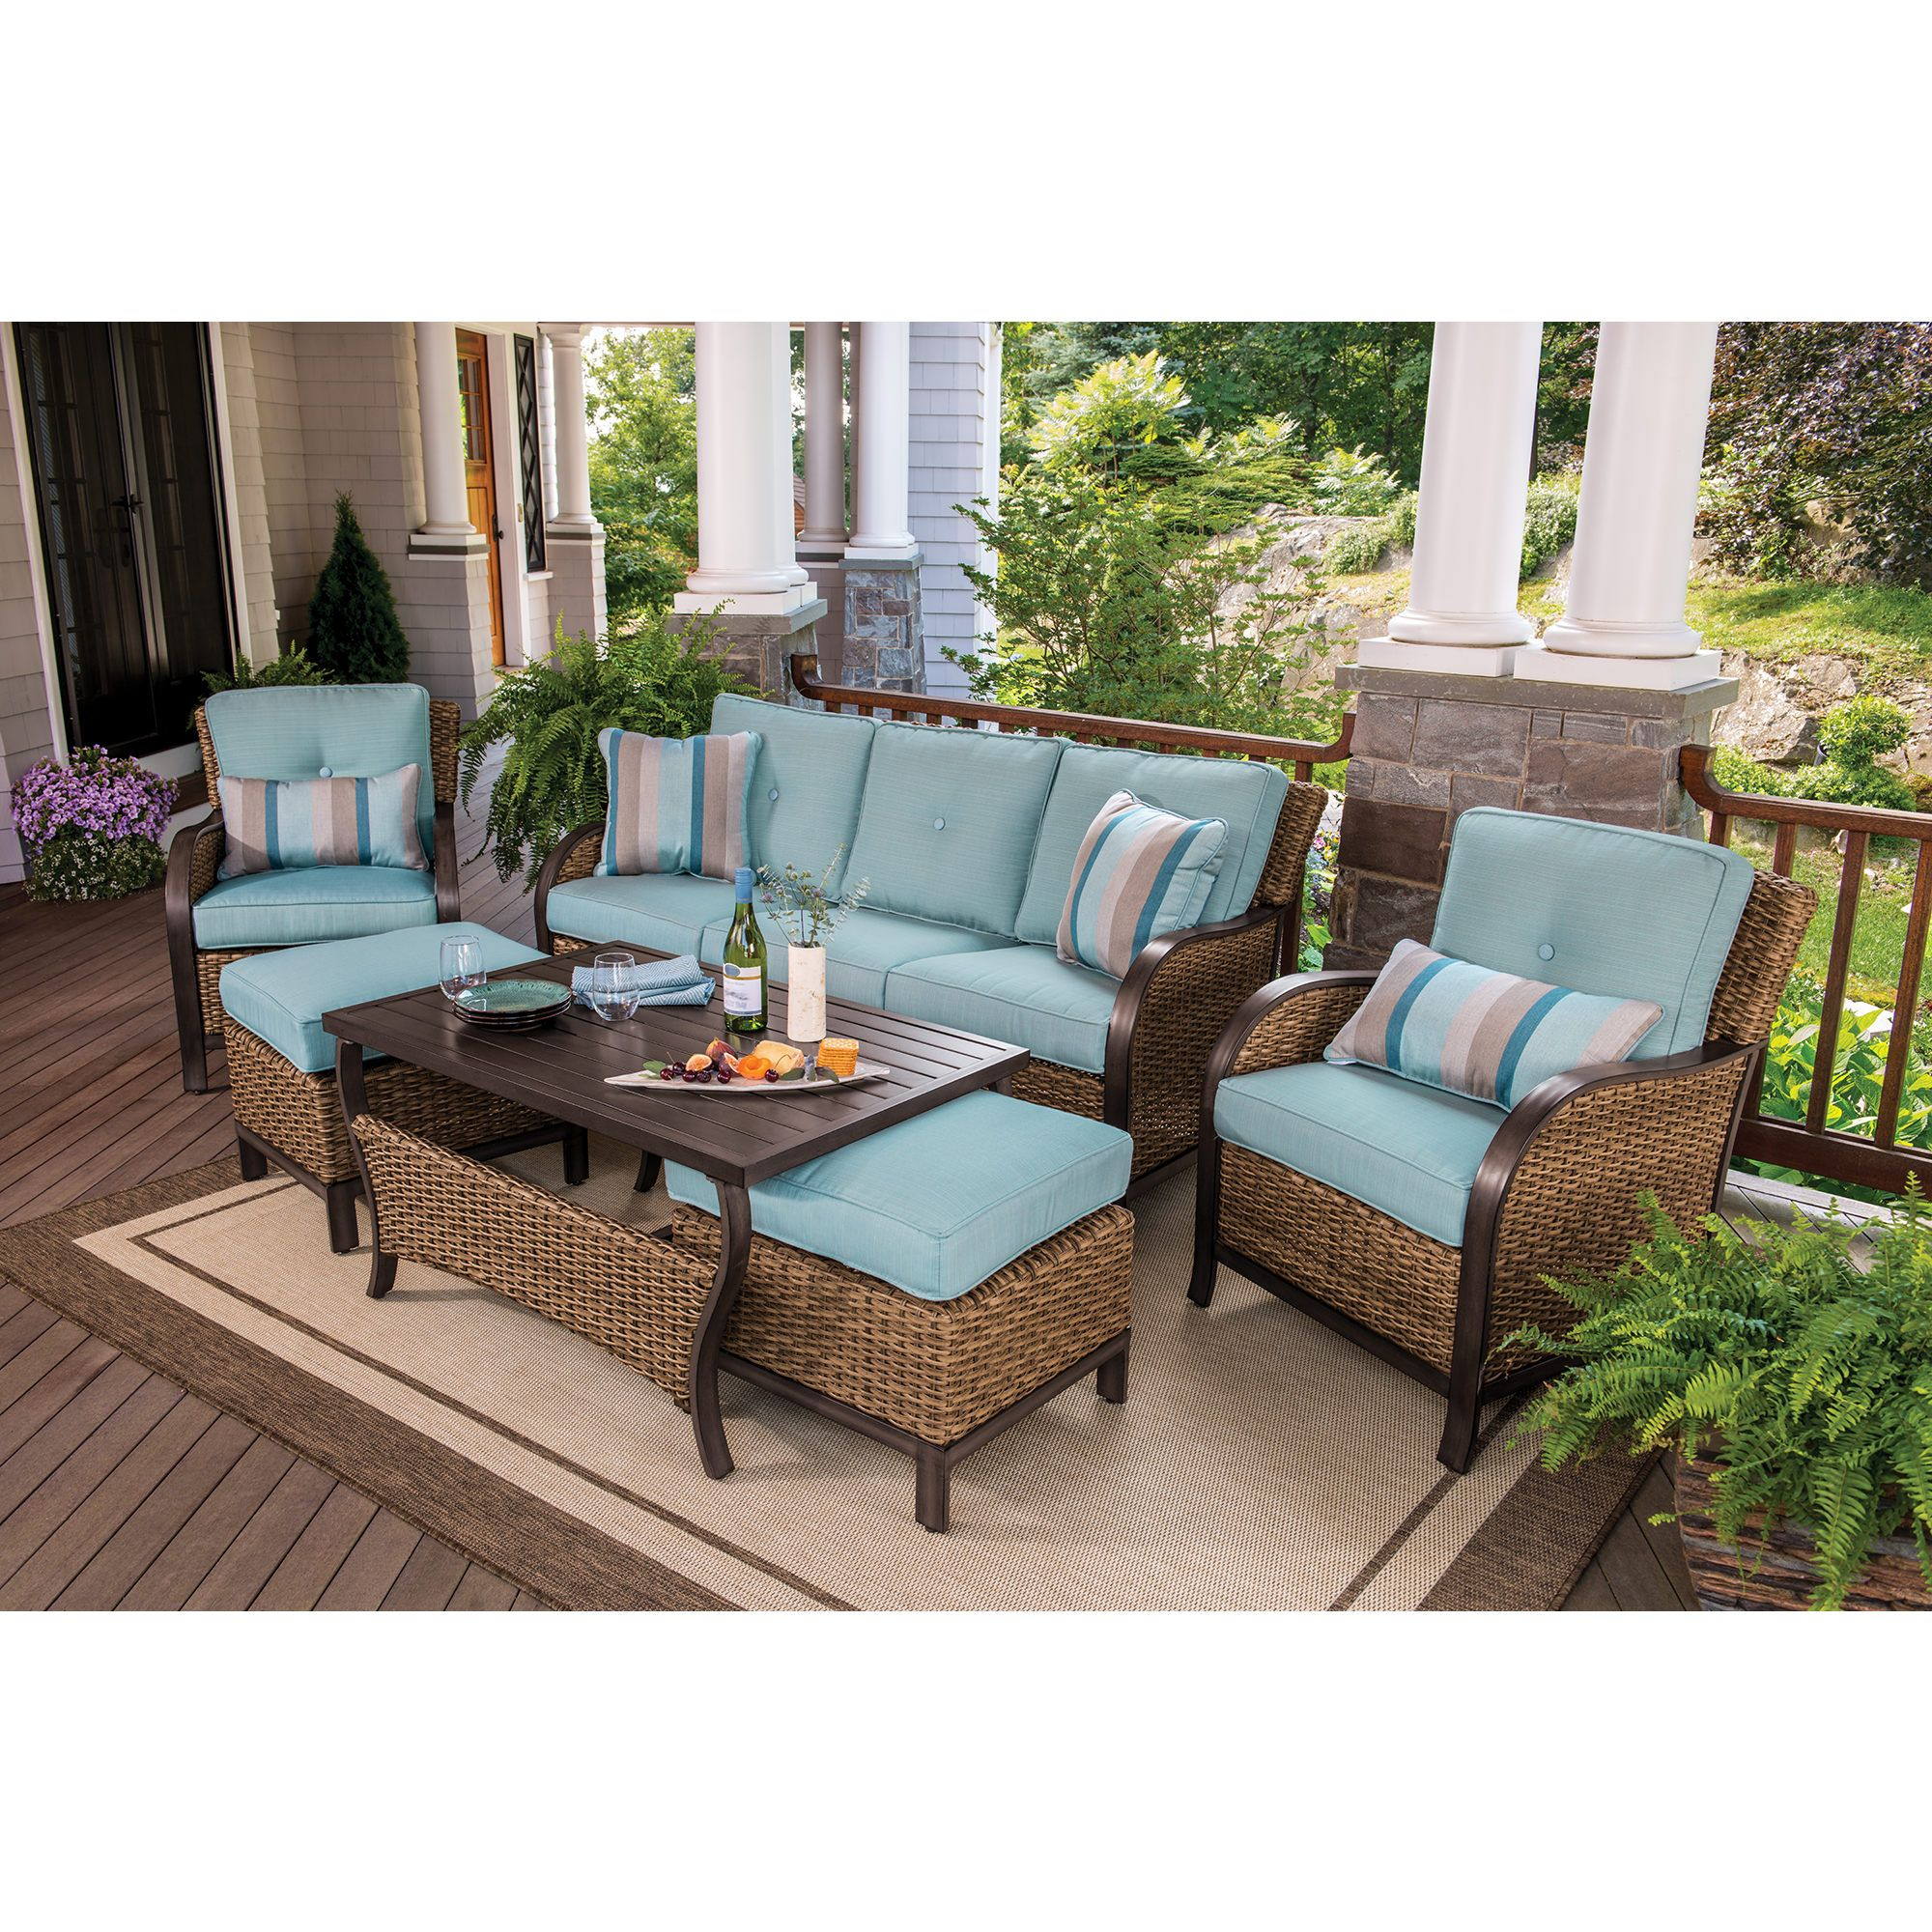 Bjs Outdoor Patio Furniture   You Are Looking To Purchase Furniture For  Your Patio So You Can Obtain A Pleasant Spot To Spen